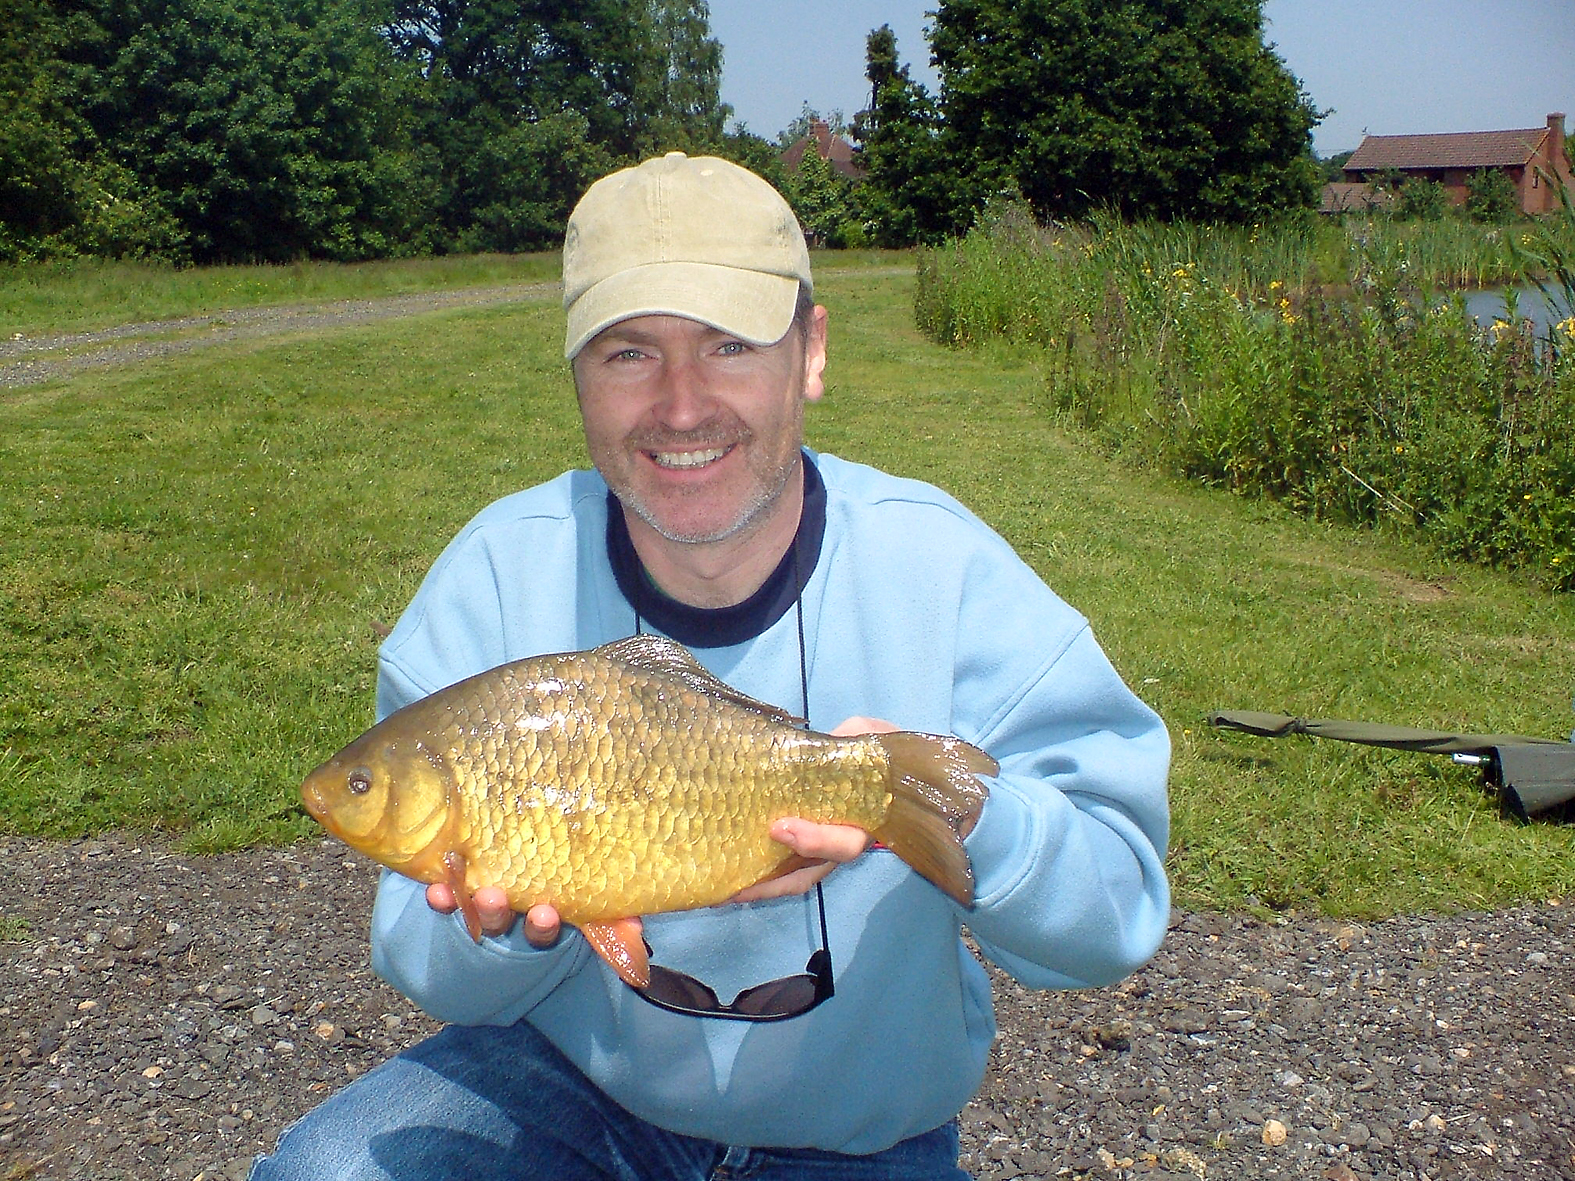 A visit to Marsh Farm, and a little bar of gold! 2lb 2ozs.